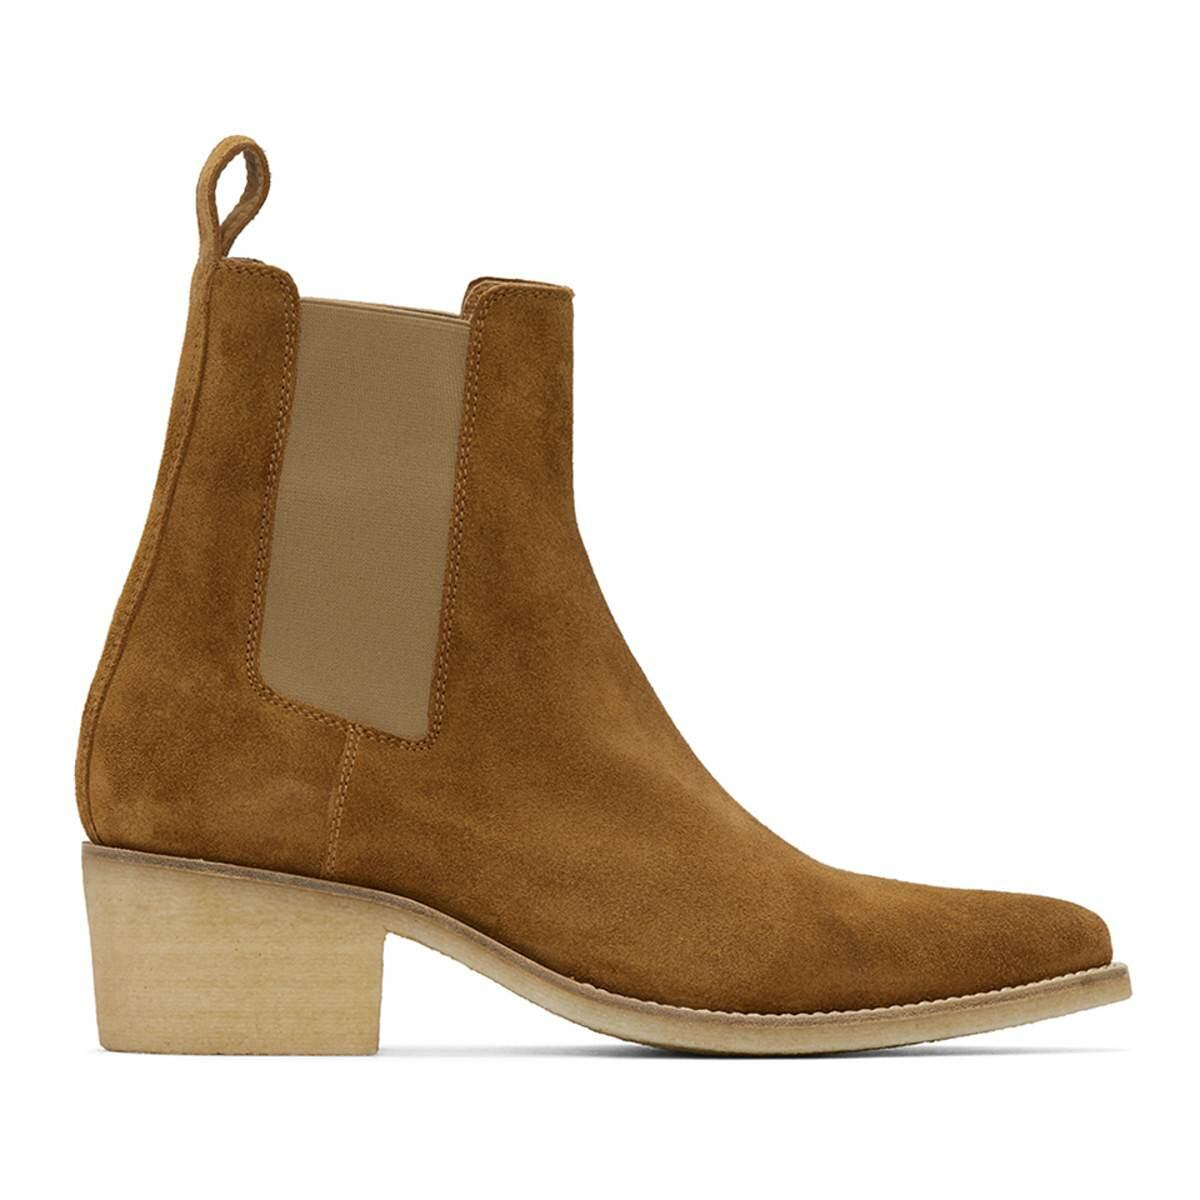 Amiri Brown Suede Pointy Toe Chelsea Boots Ssense USA MEN Men SHOES Mens BOOTS